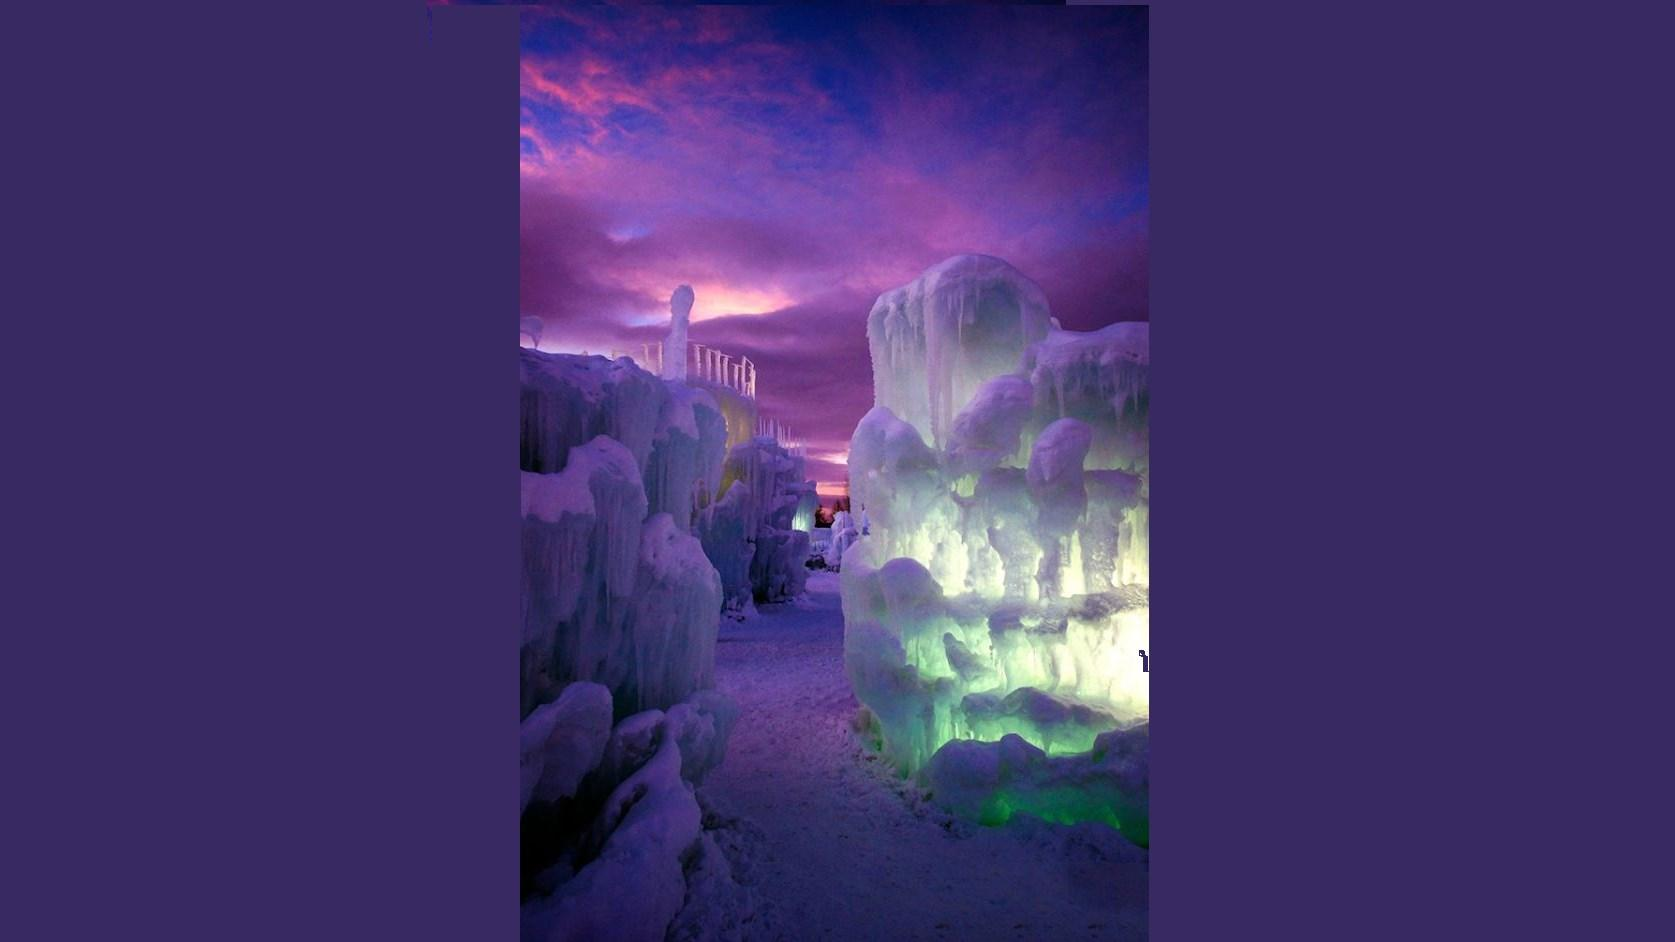 ice castles coming to